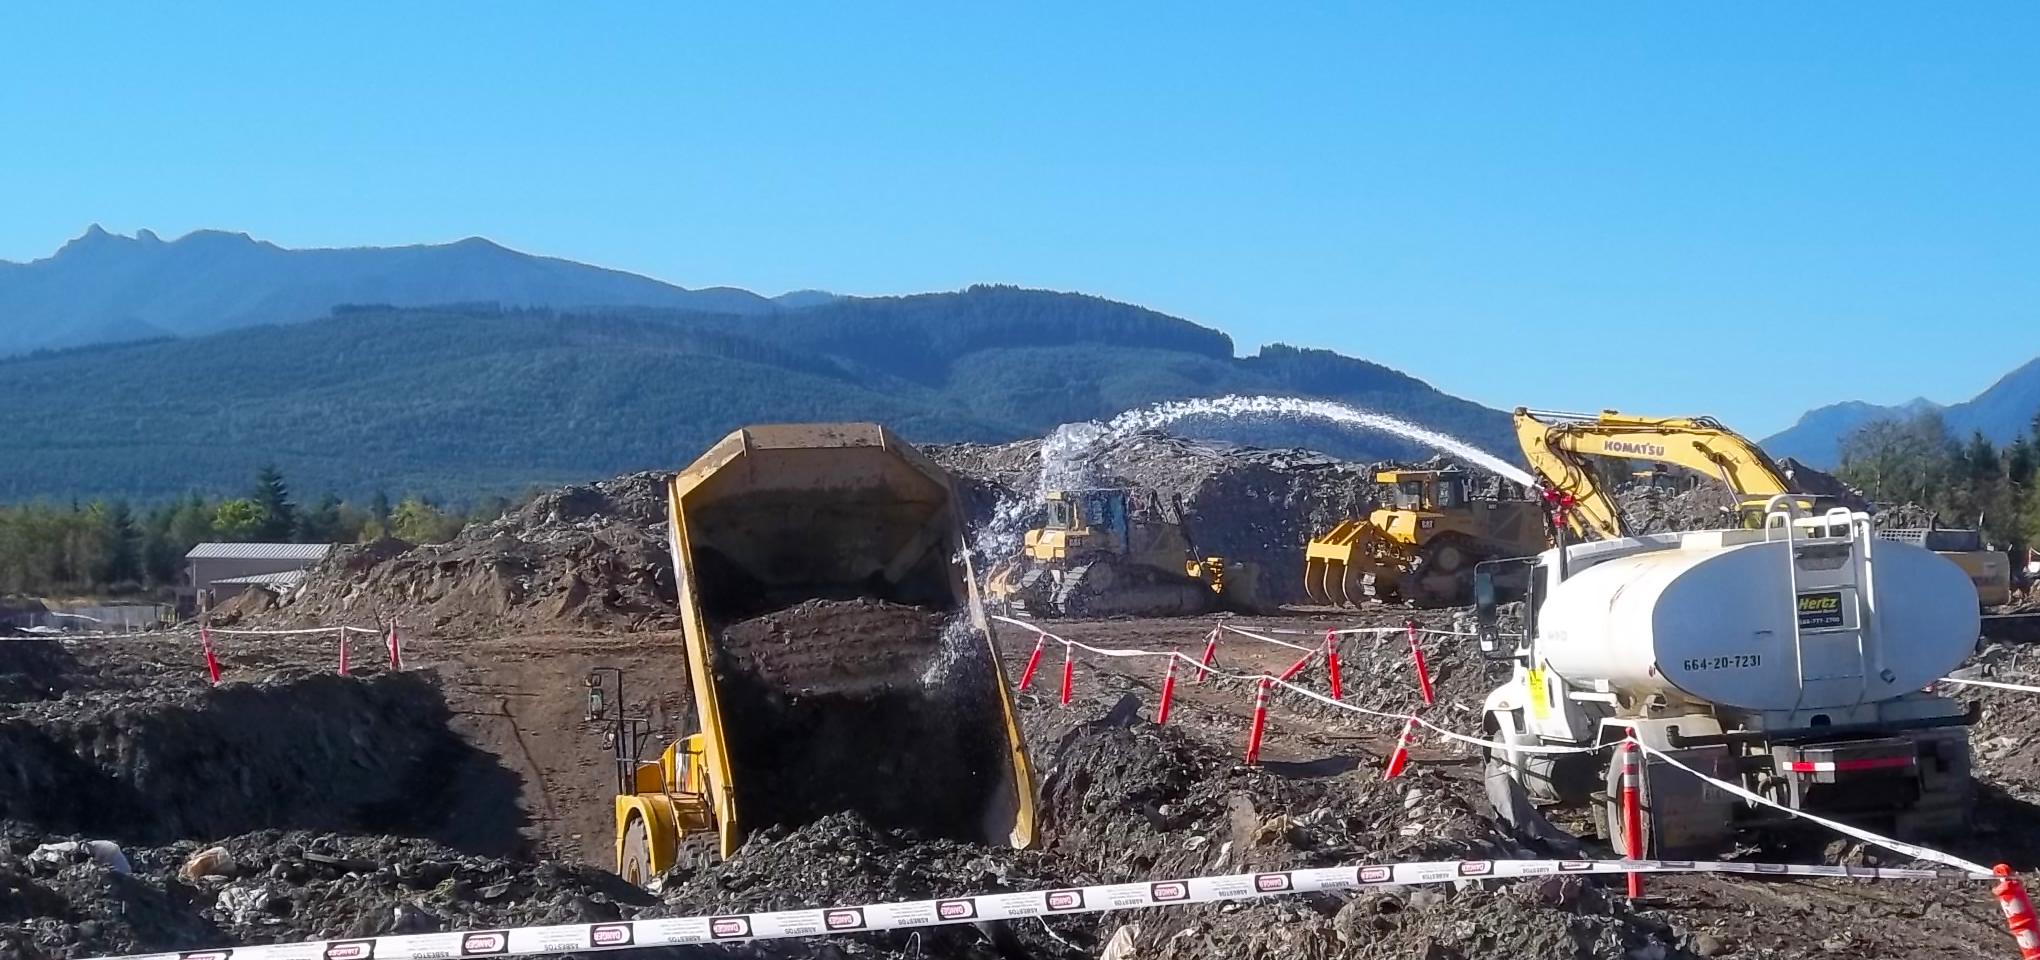 Net Compliance - Demolition Remediation And Engineering Services - HUBzone SDB Small Business